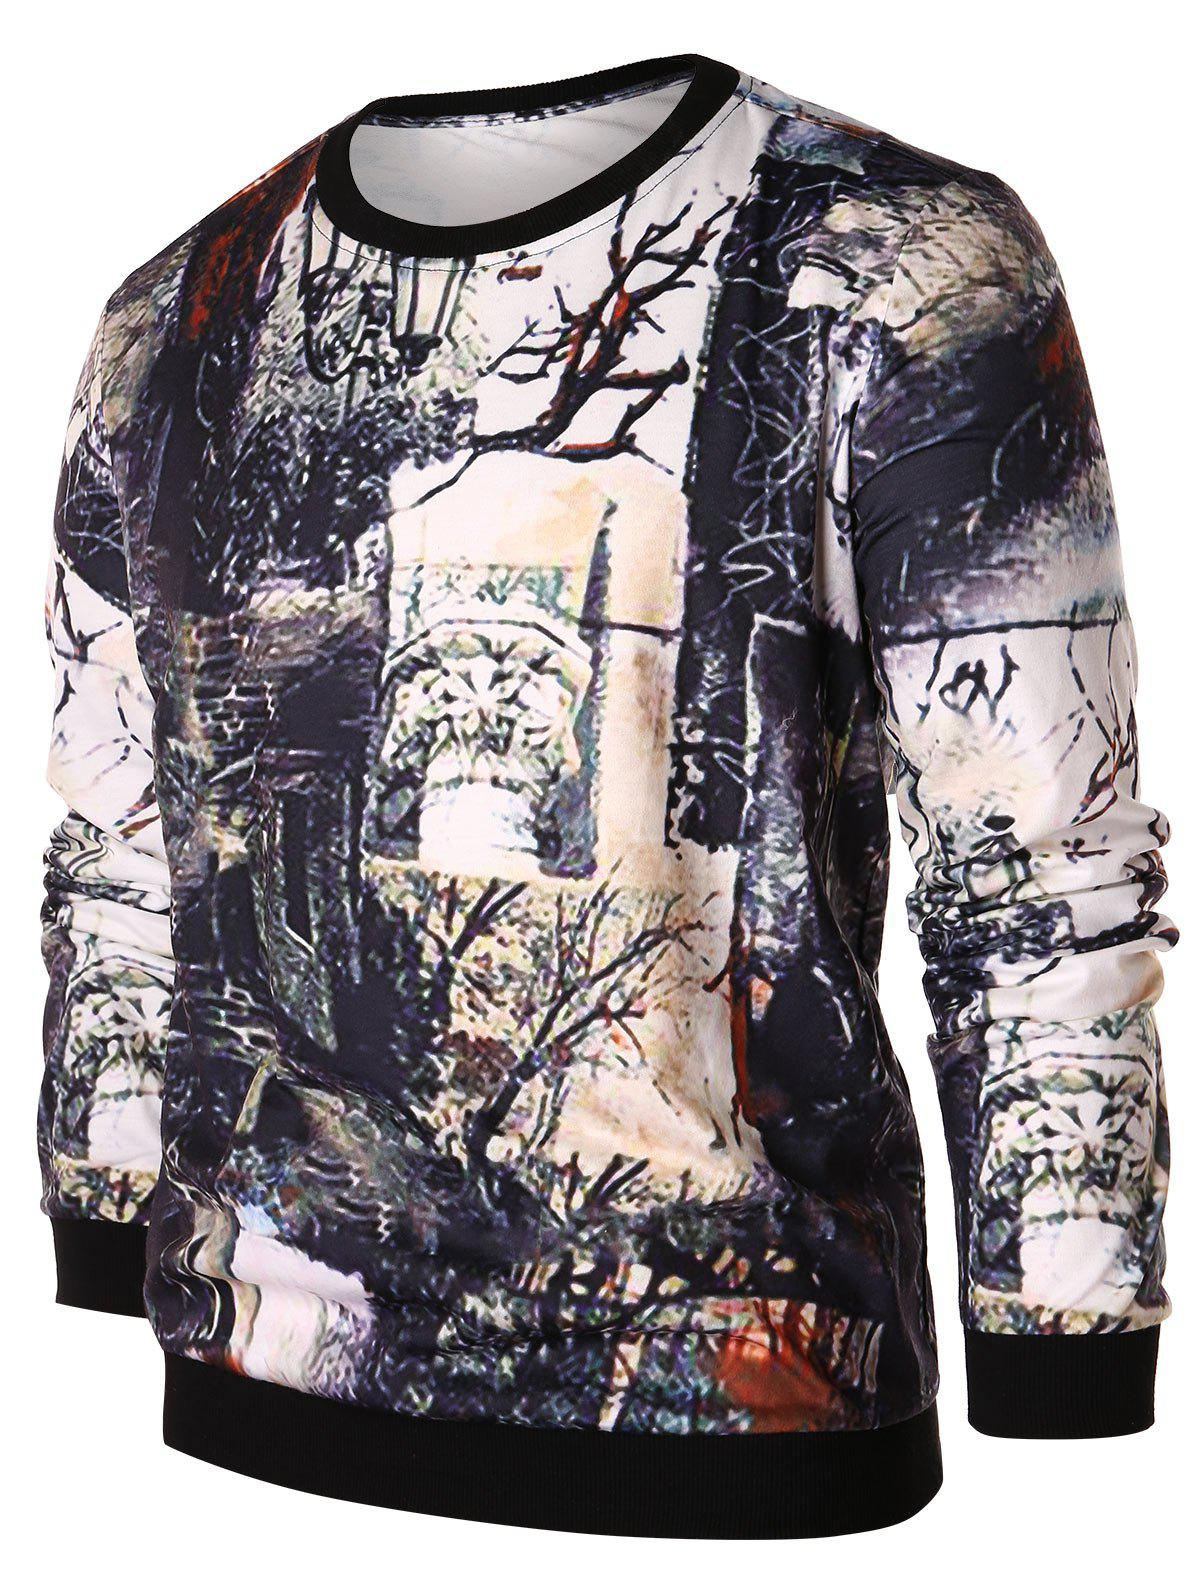 Sweat-shirt Pull-over Vintage Arbre Imprimé Multi 2XL